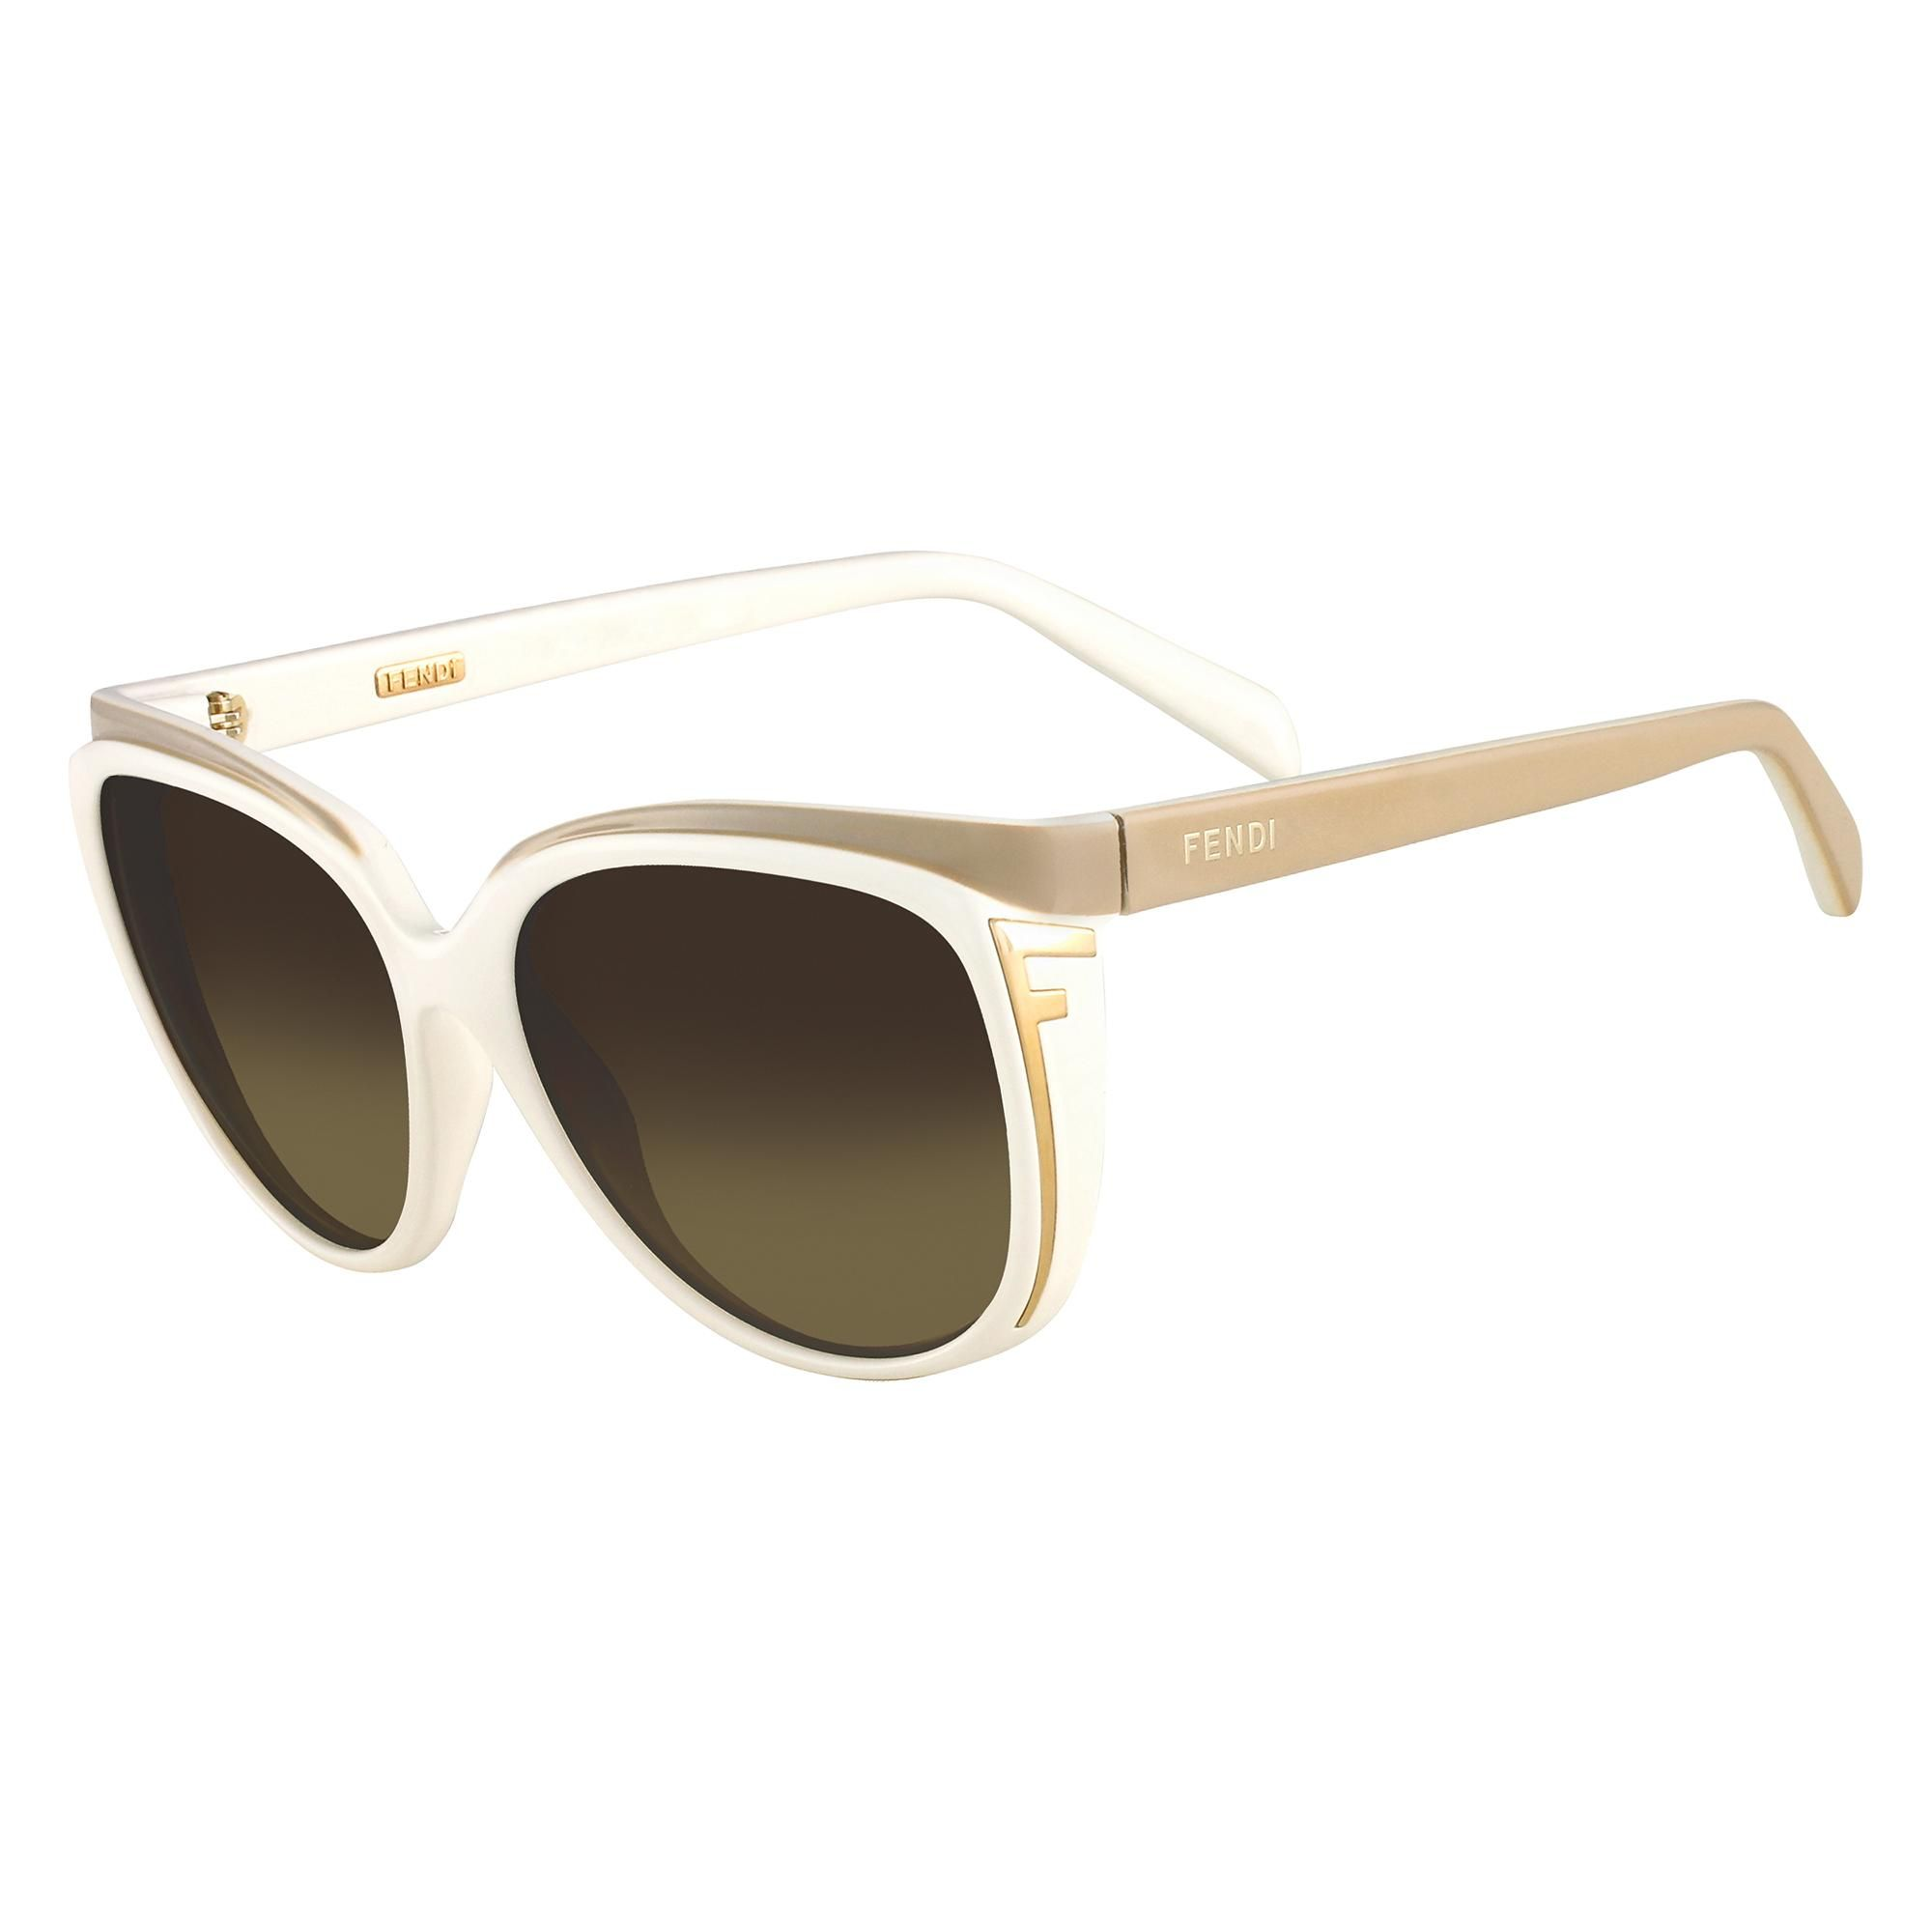 Fendi Sunglasses - FS5283/108/57-17